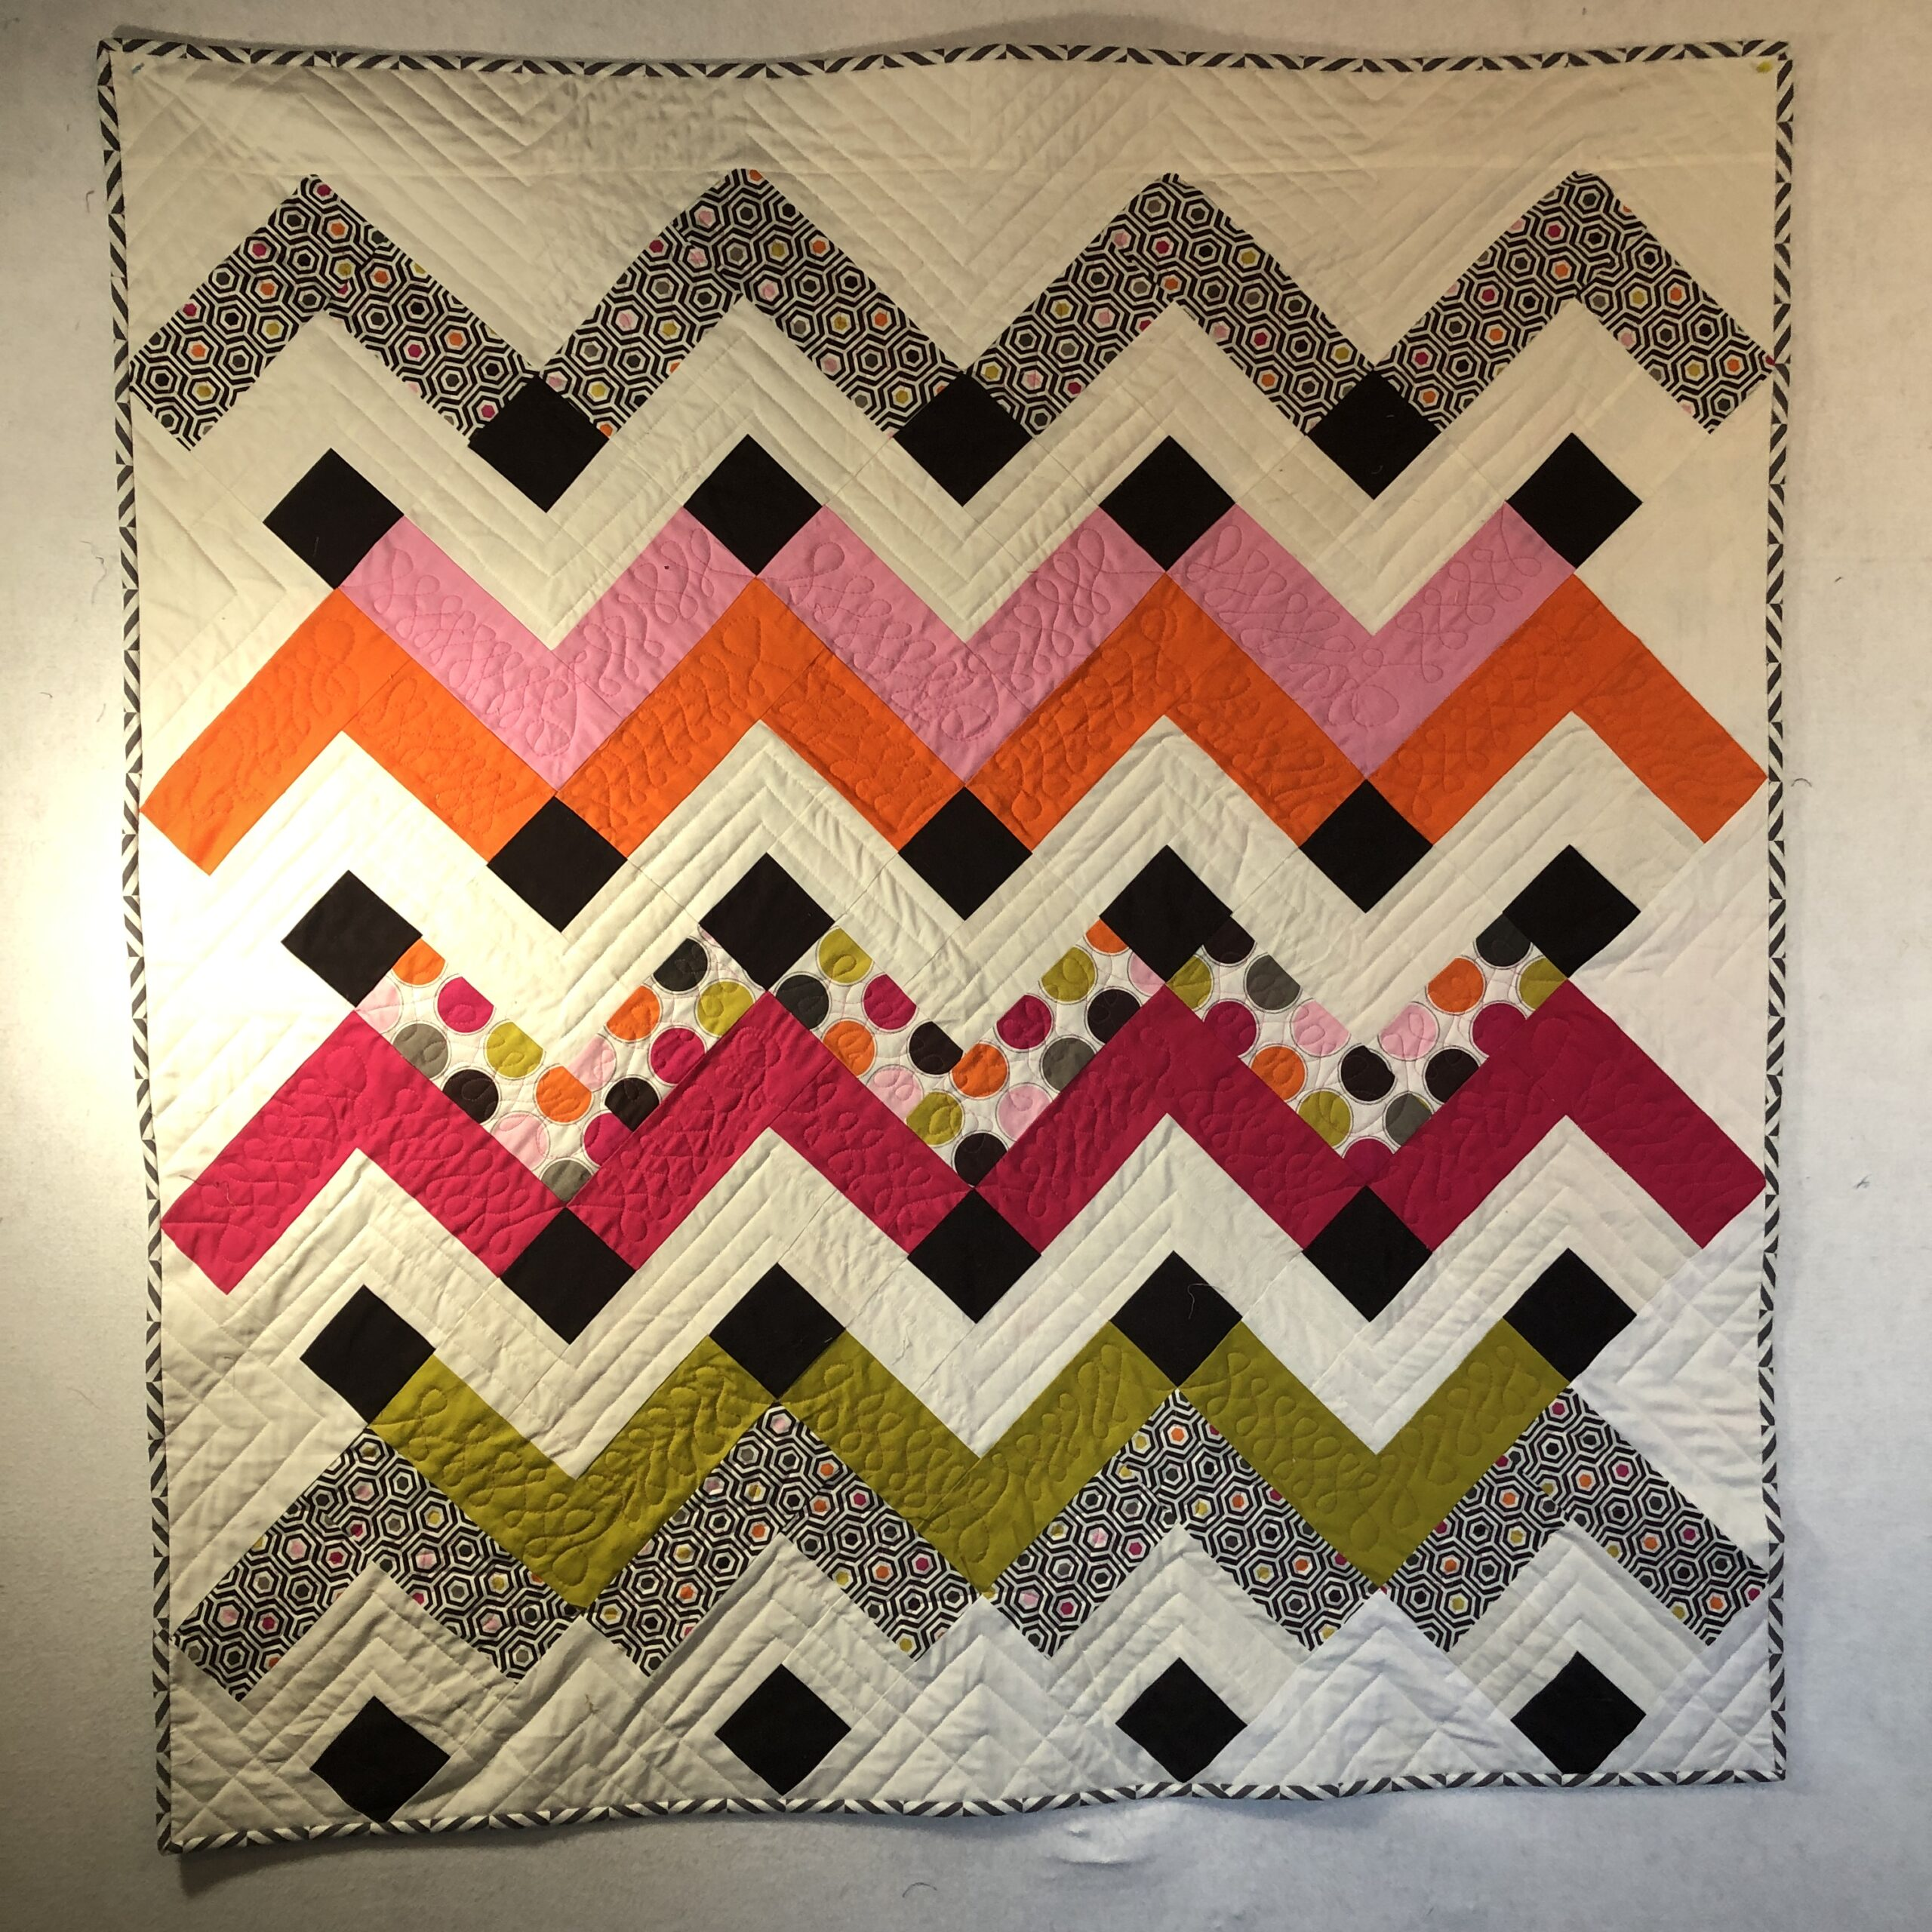 Thrive Quilt finished!